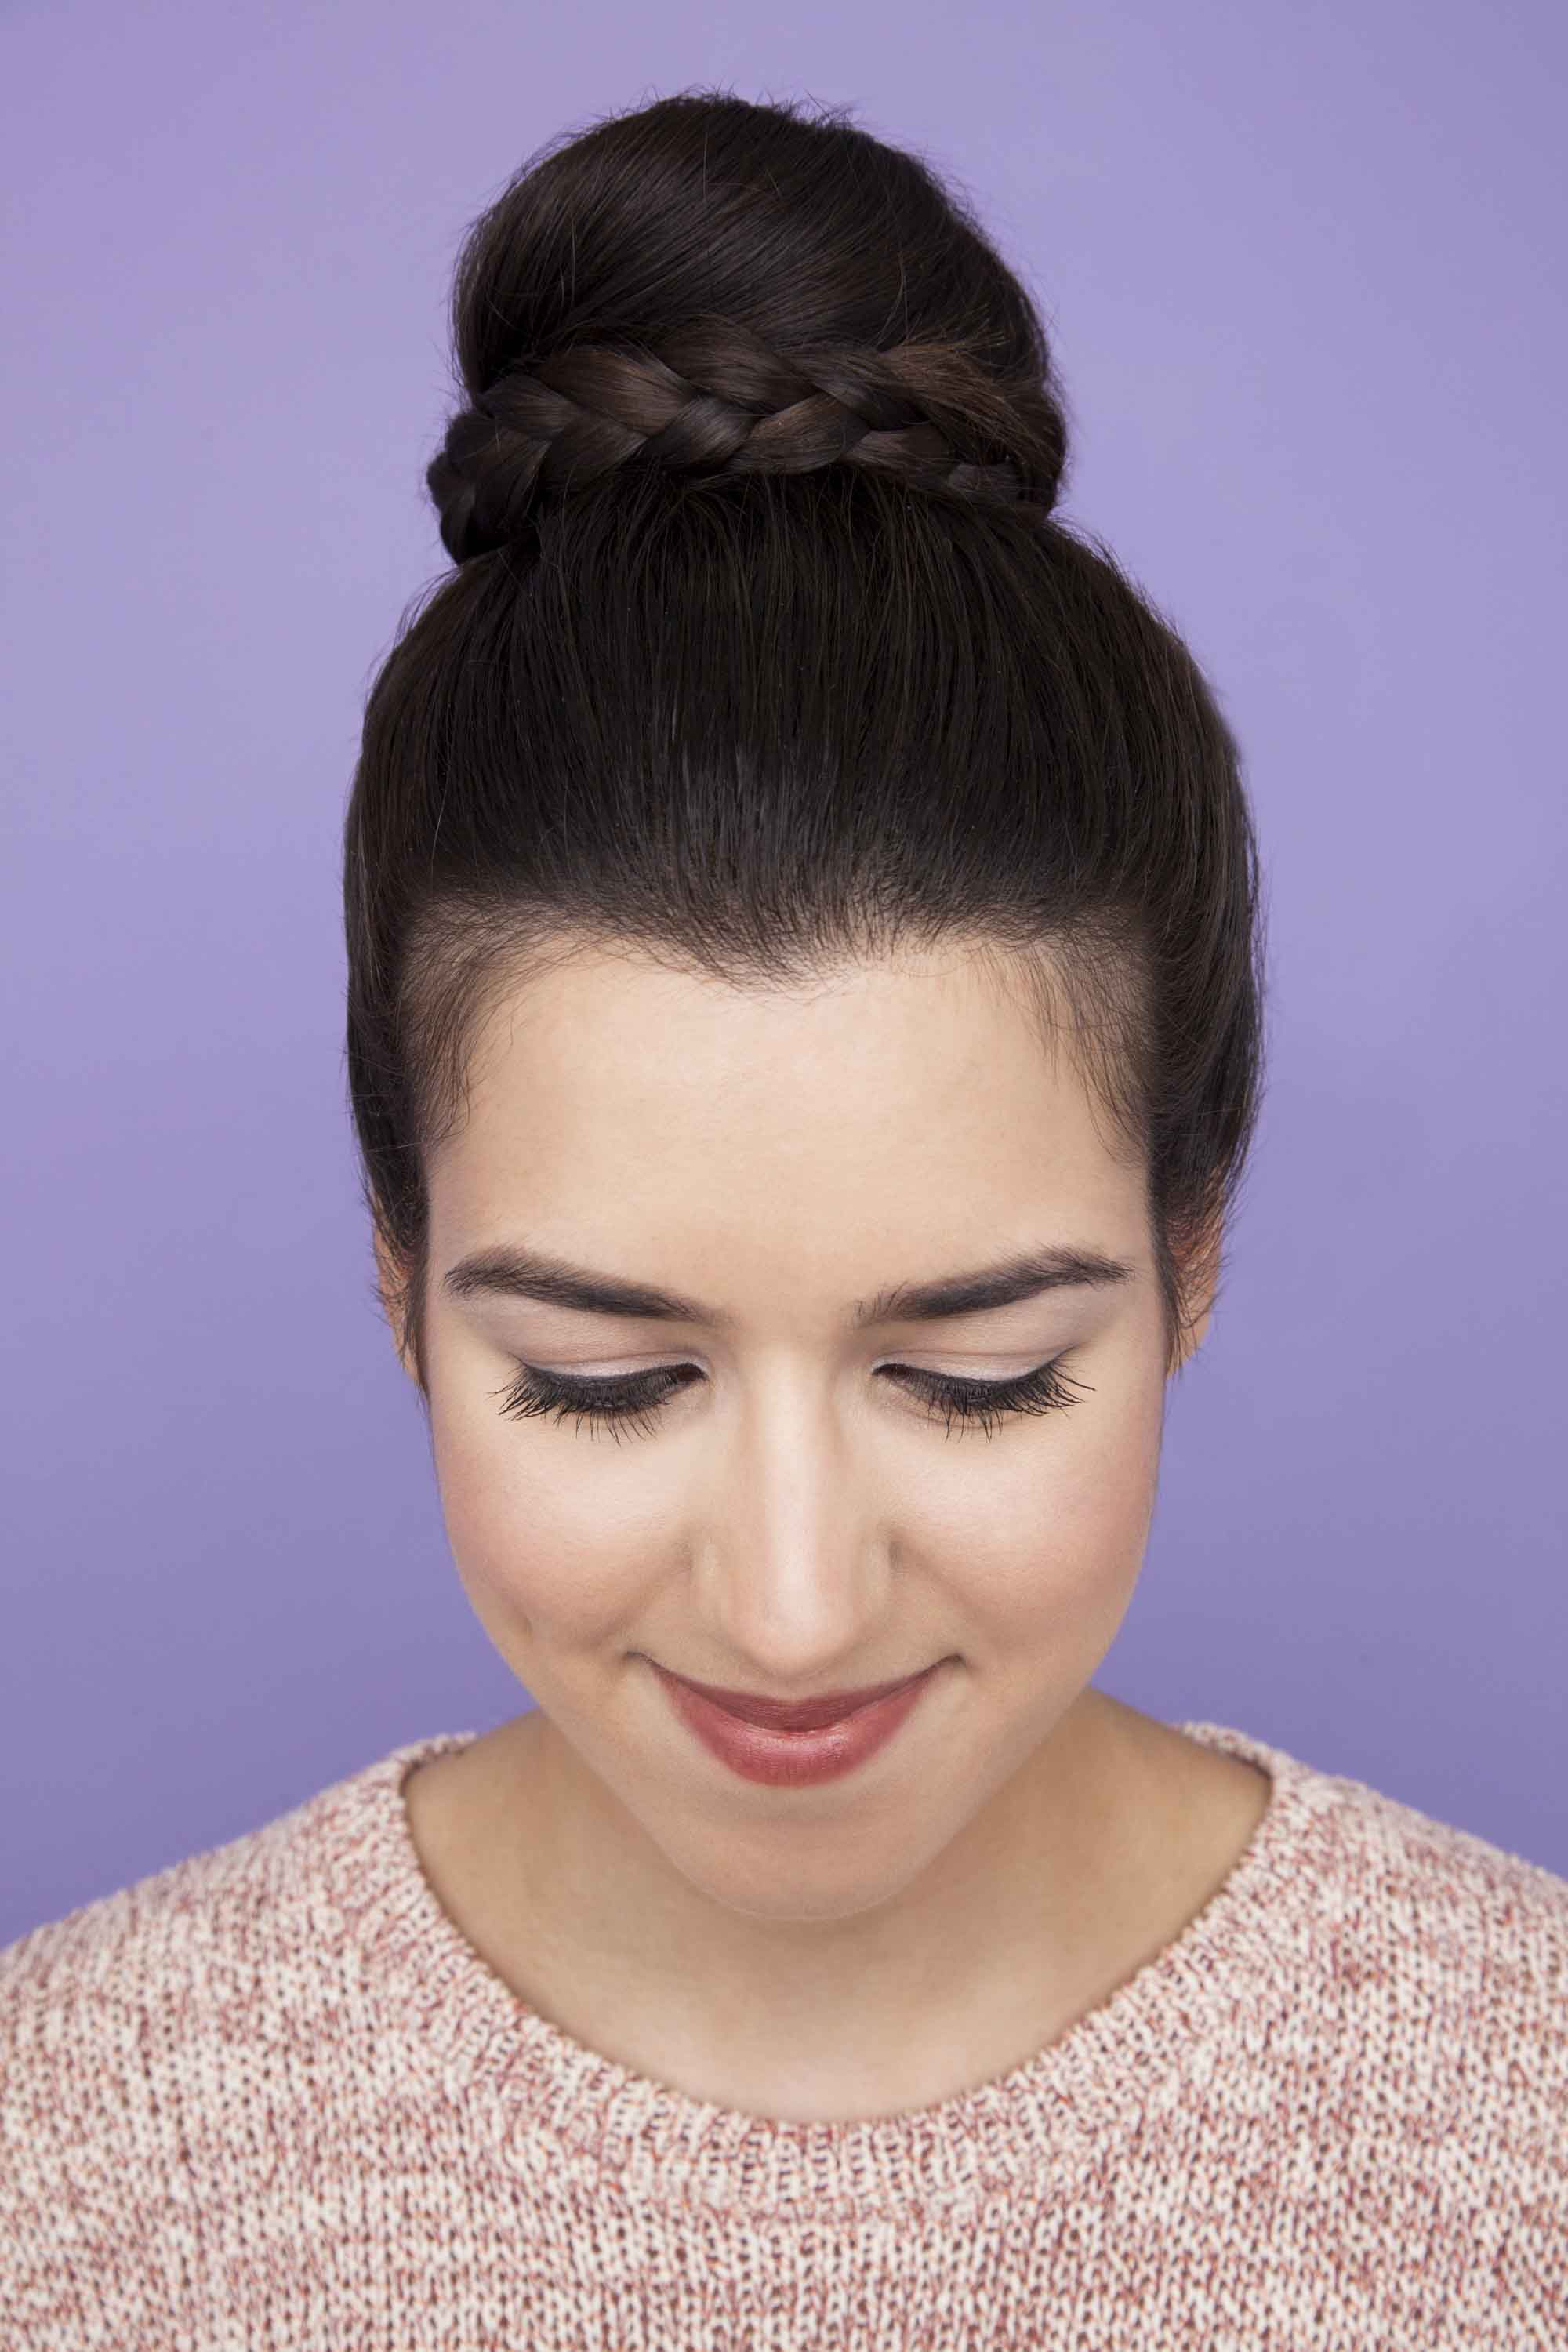 Easy Braid Hairstyles You Can Do Even If Youre Not A Hair Pro